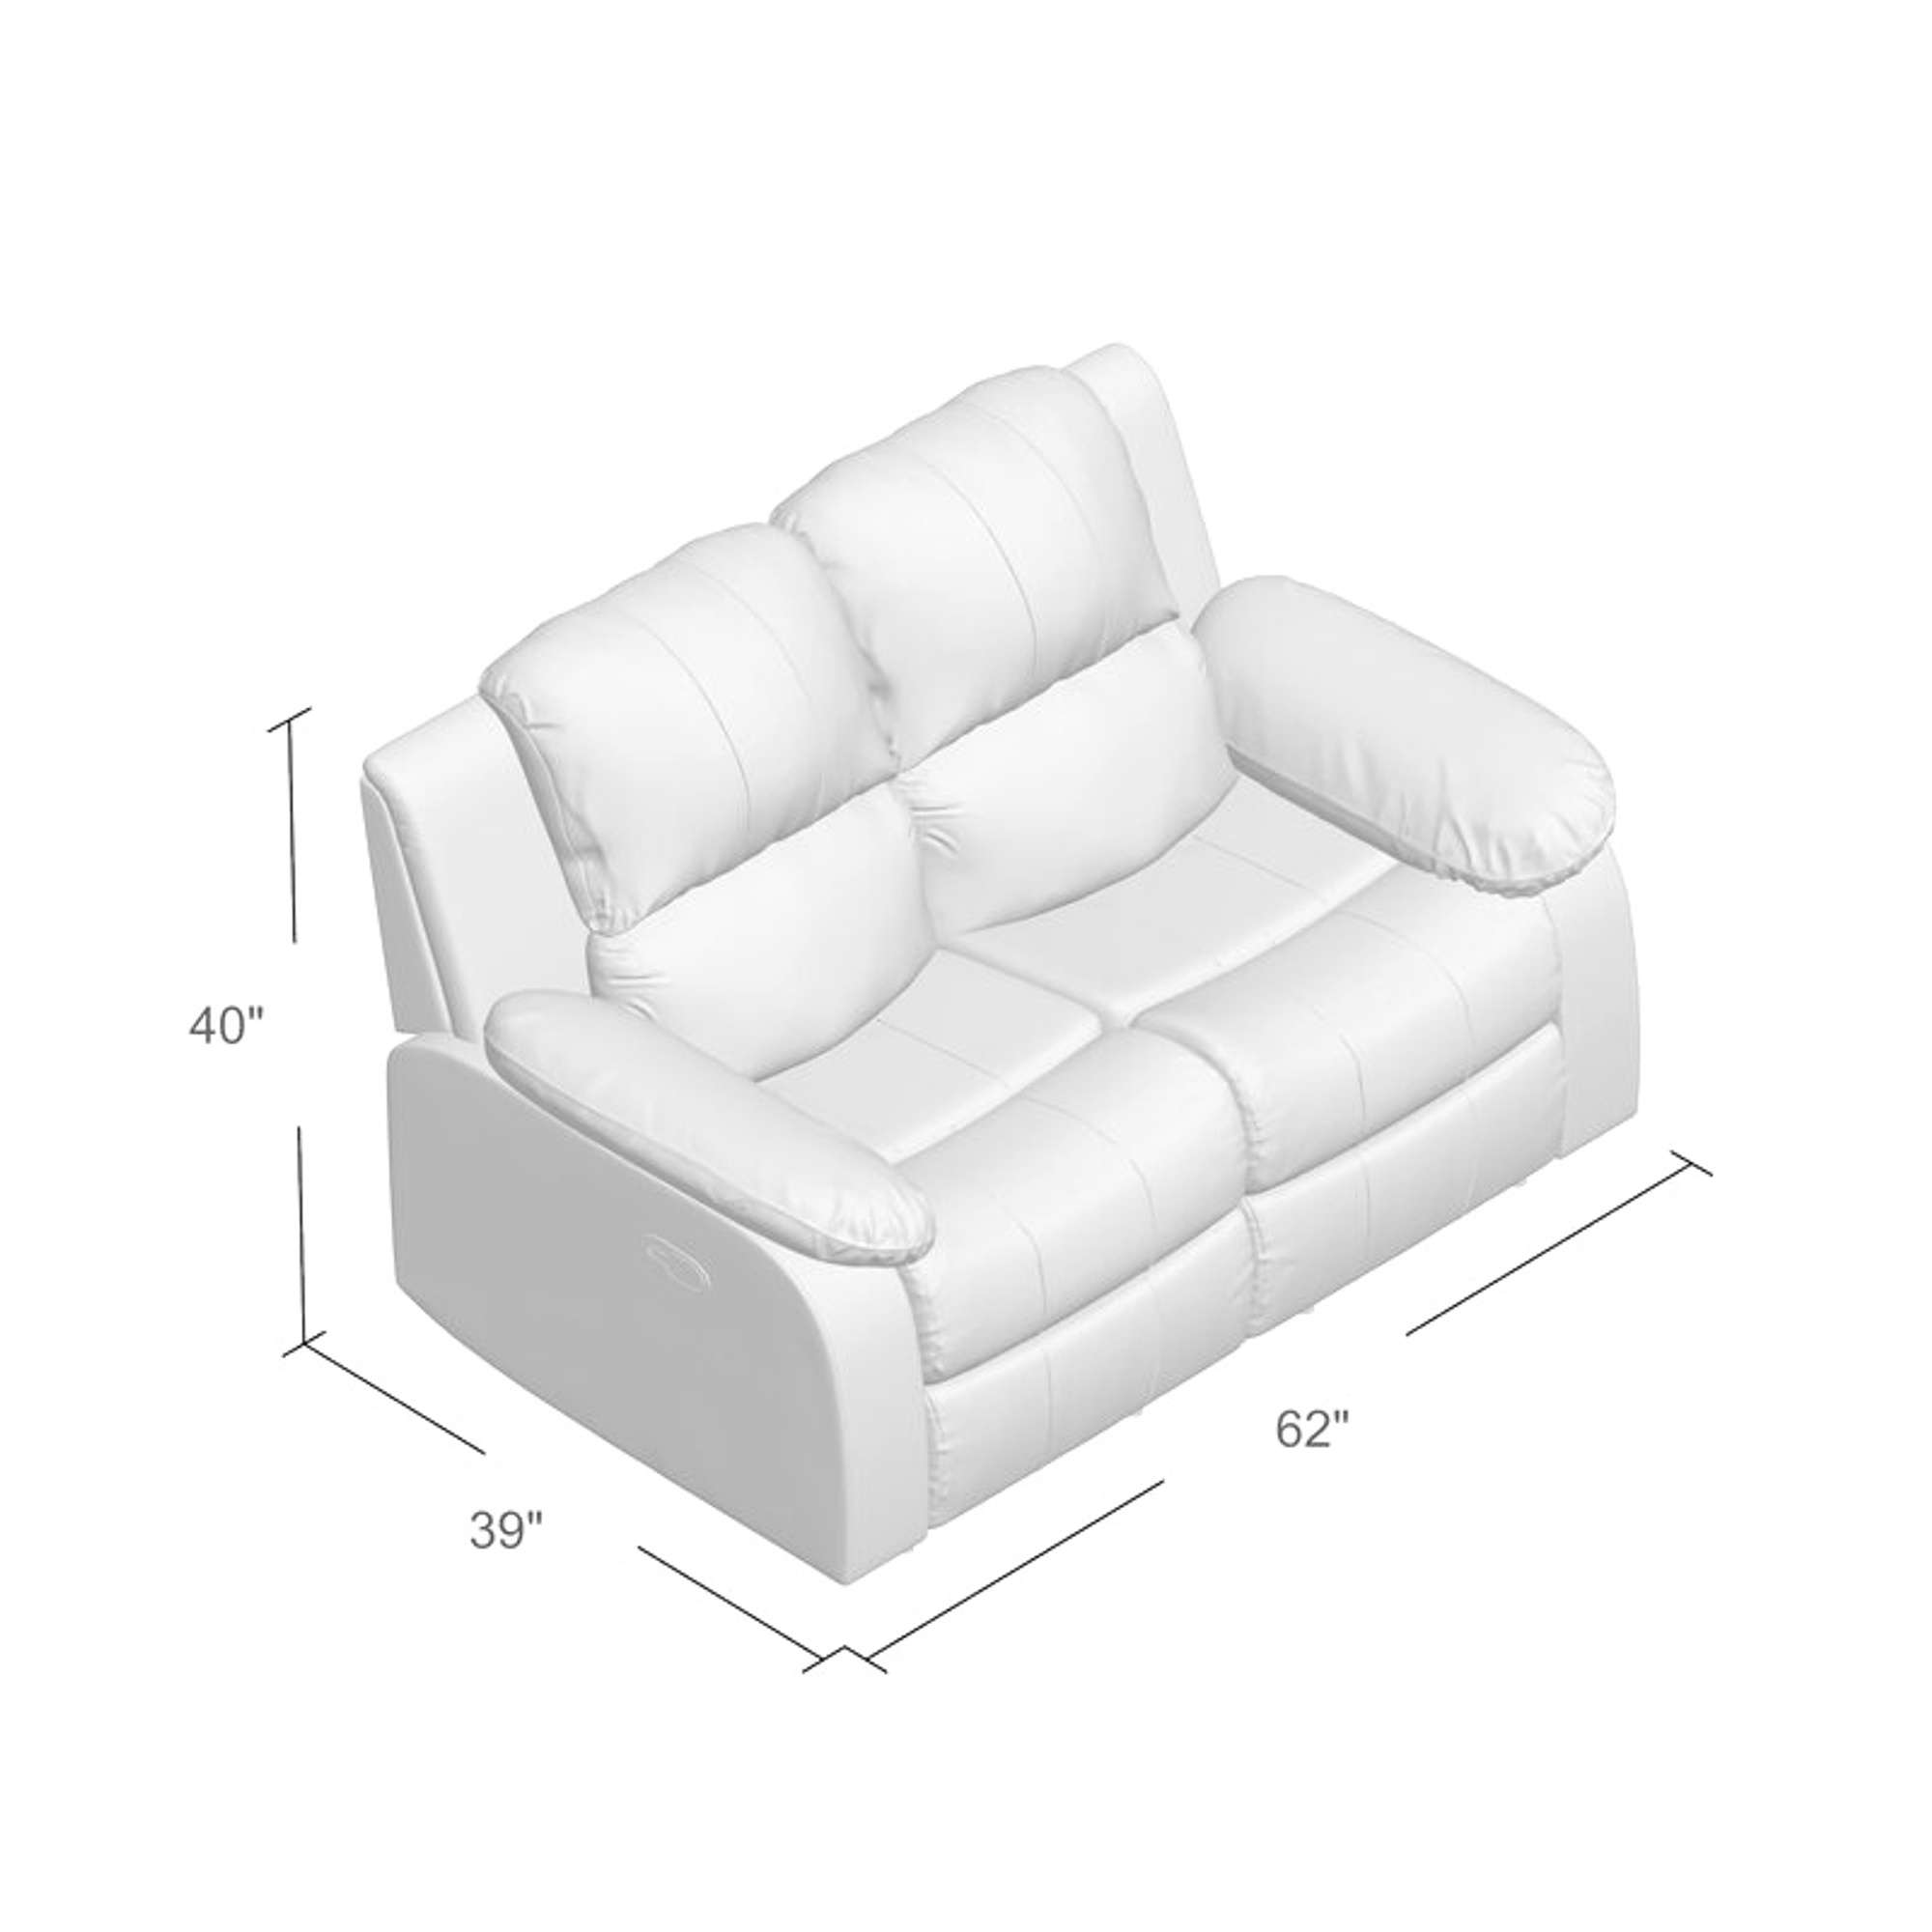 Malec Reclining 60 Pillow Top Arms Loveseat Loveseat Online Auctions San Diego